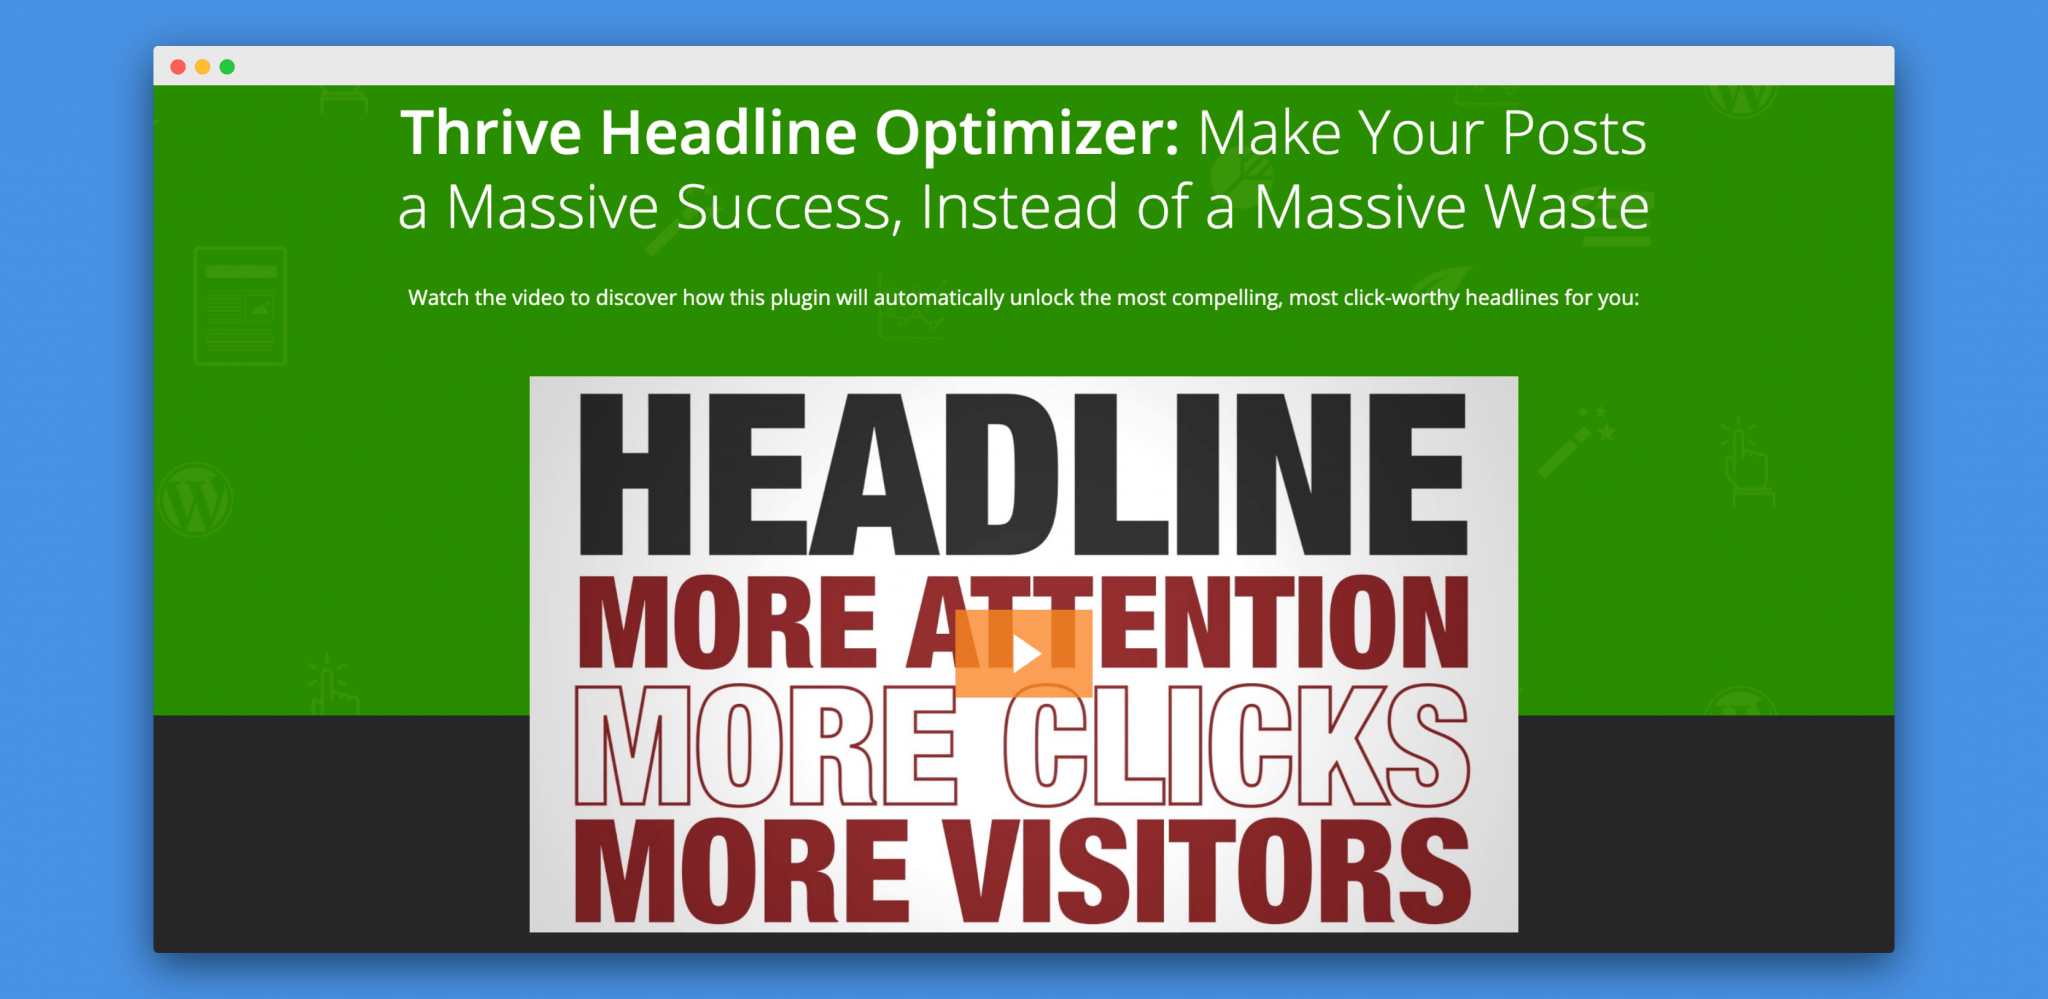 thrive headline optimizer image